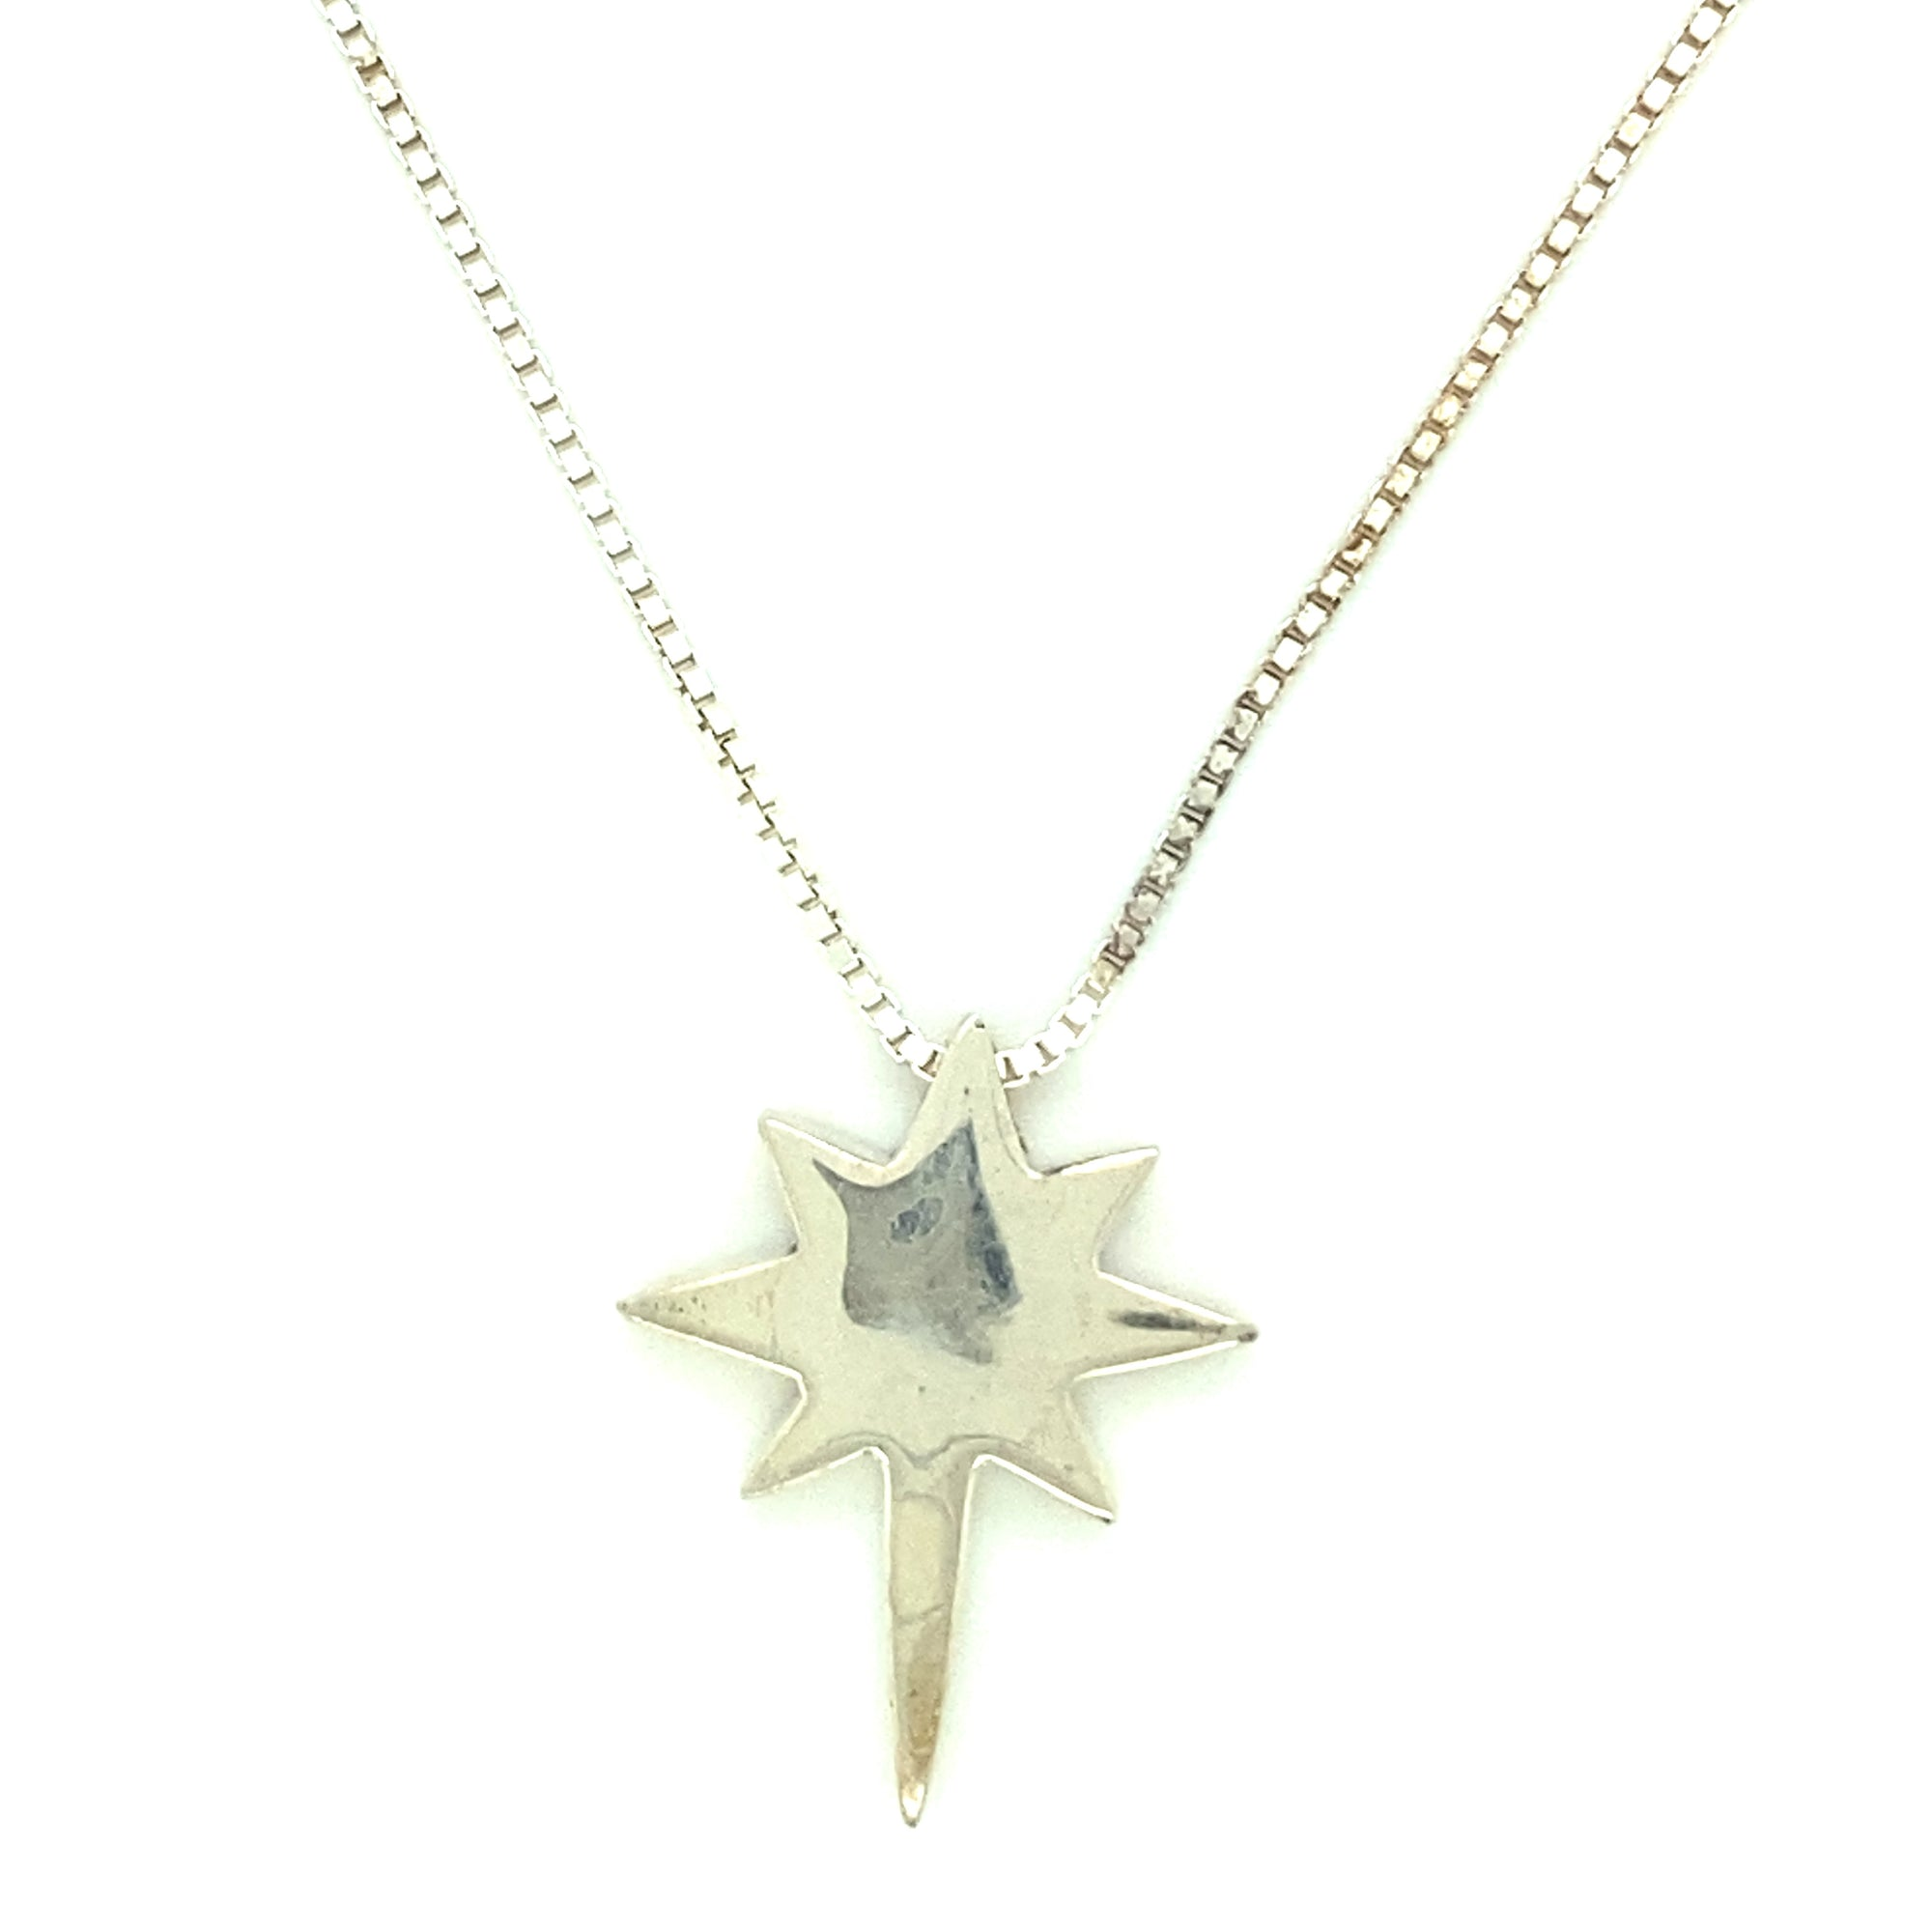 You Will Shine Among Them Star Pendant